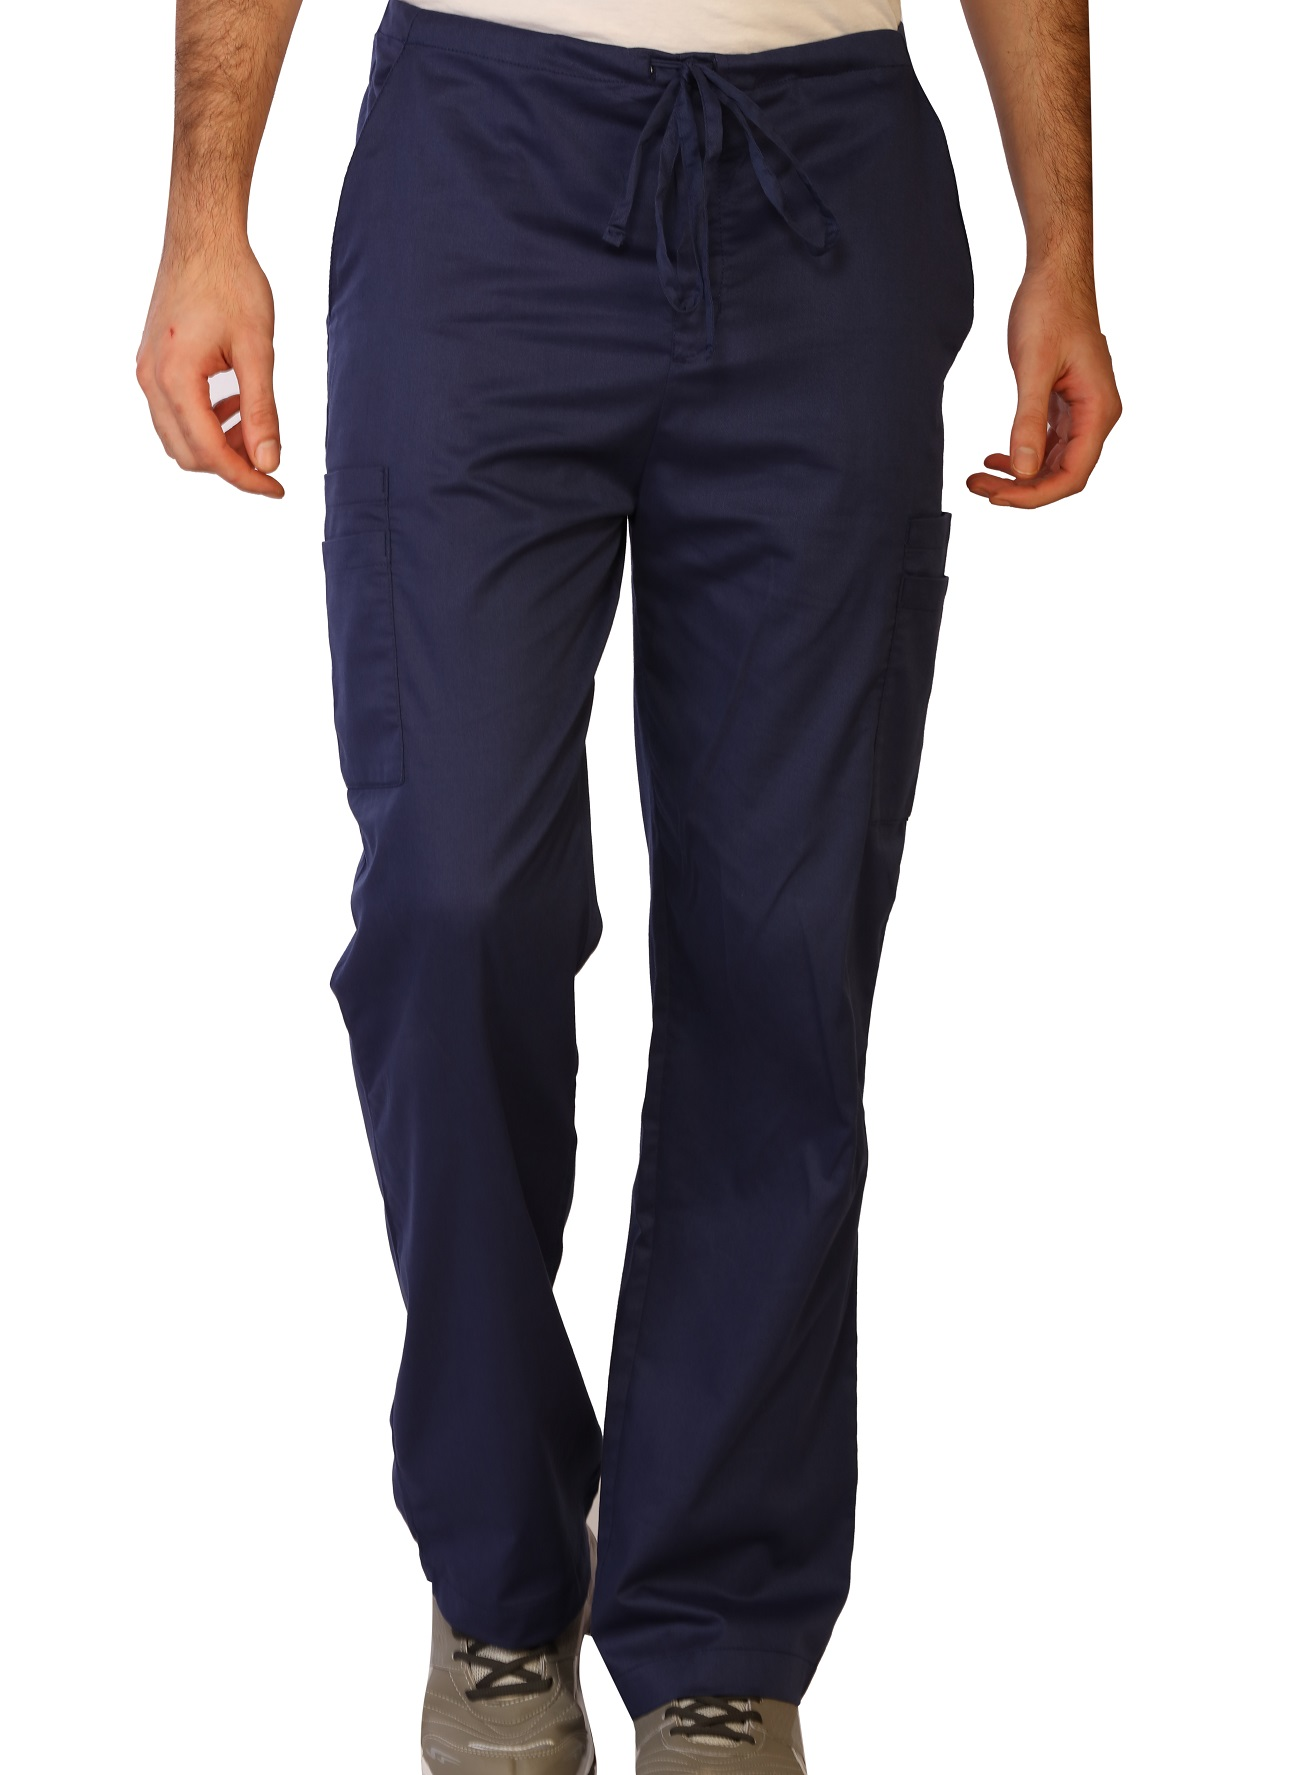 Men's Stretch Double Cargo Scrub Pants, LifeThreads Contego Collection -LifeThreads